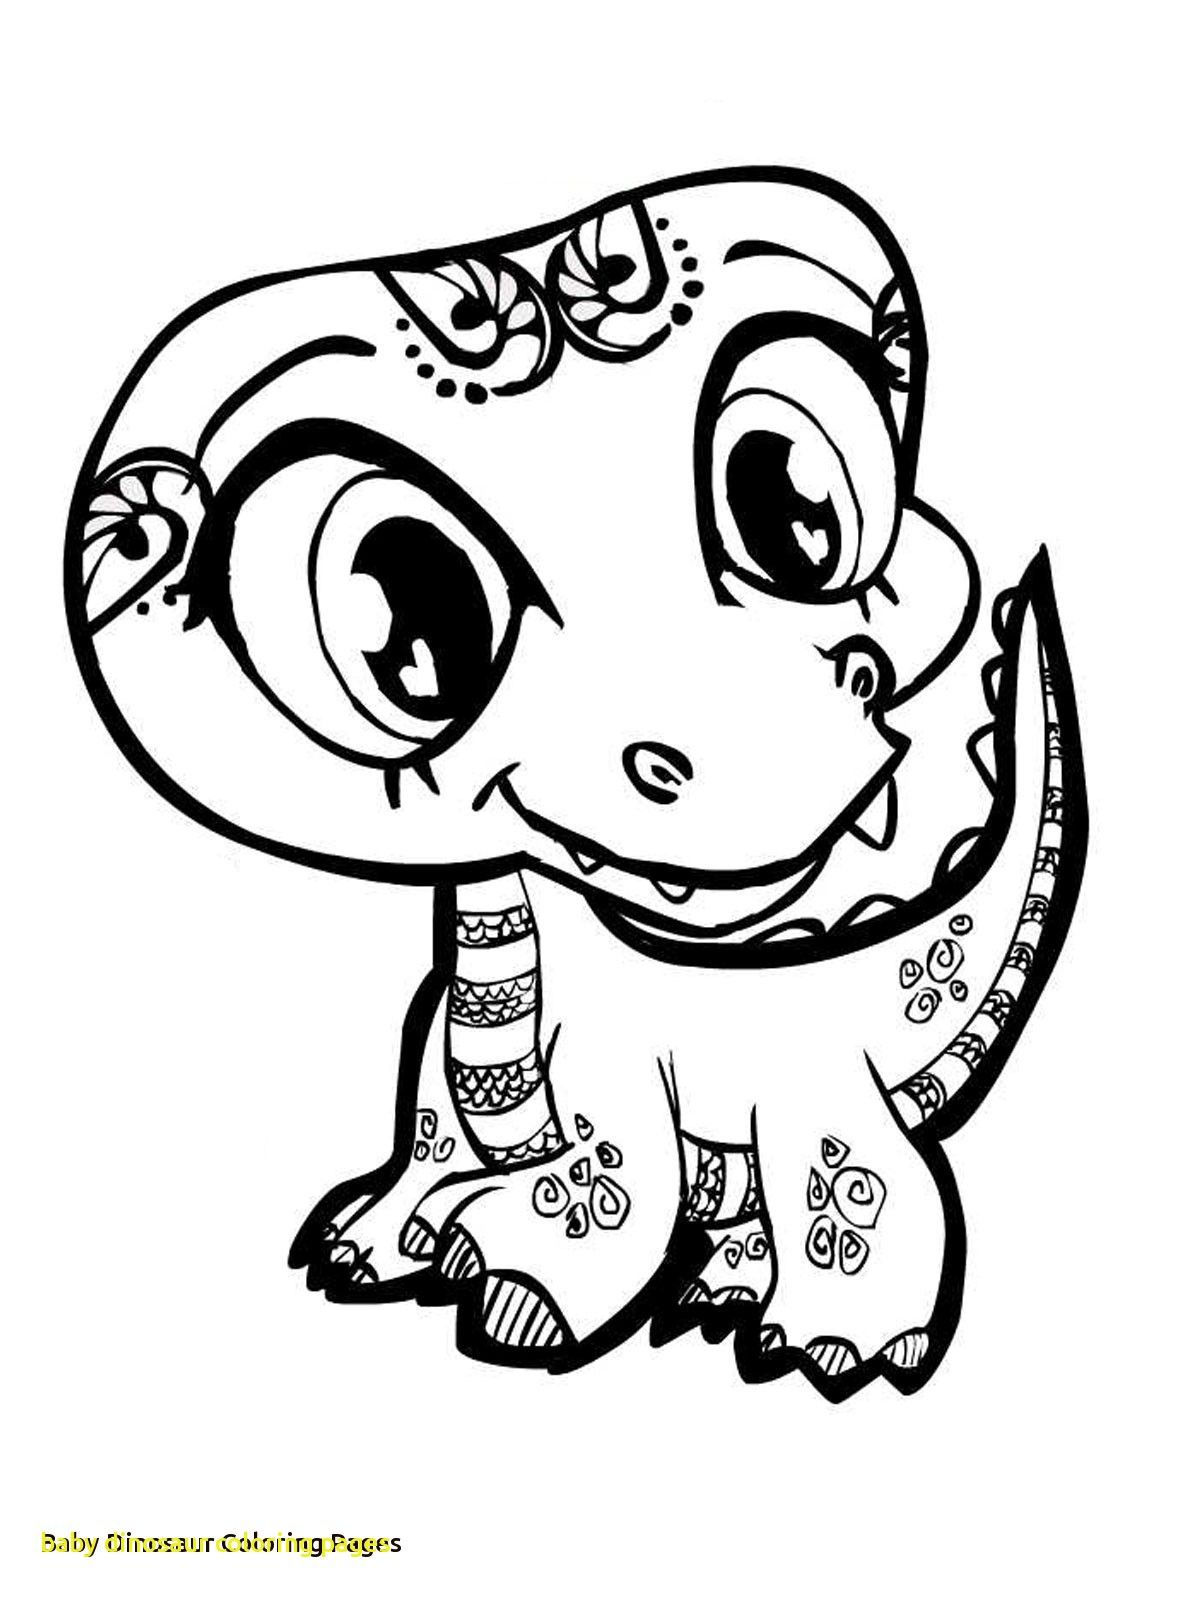 Baby Dinosaur Coloring Pages with